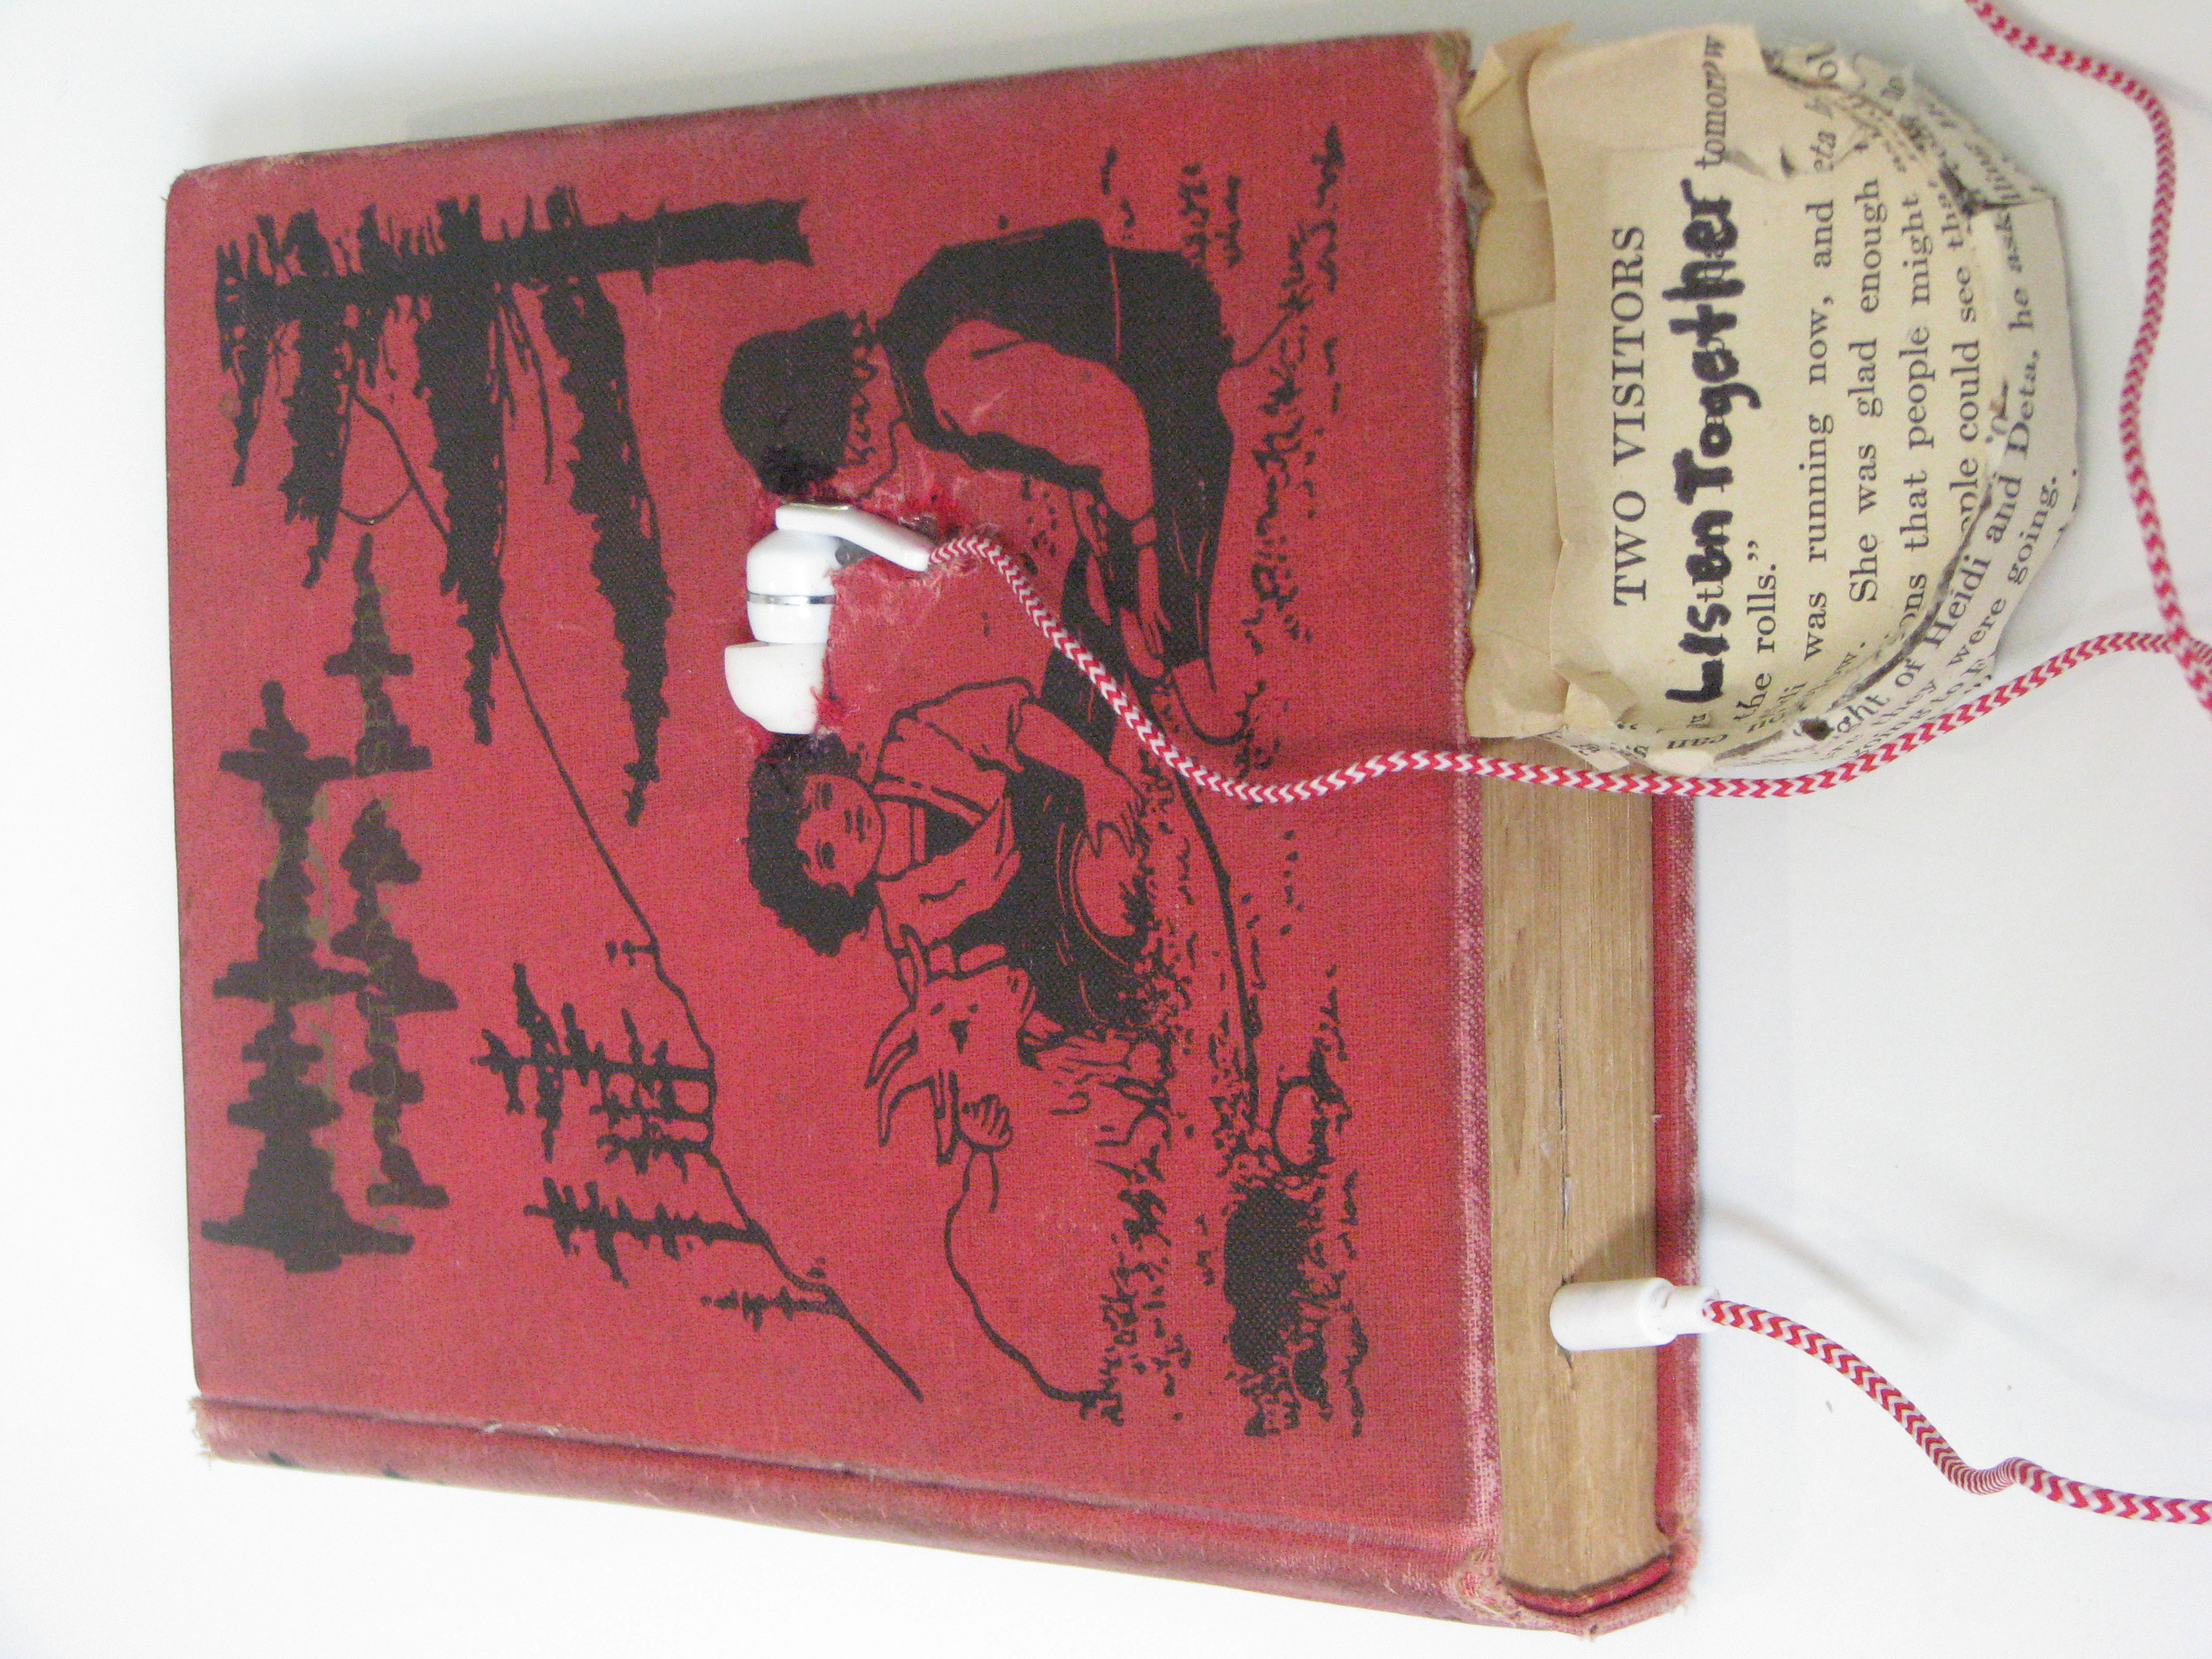 Red book with two children on the cover, in between the children a small hole has been dug into the book where an ear bud has been placed, paper in a circular motion has been added to the bottom of the book the top text reads